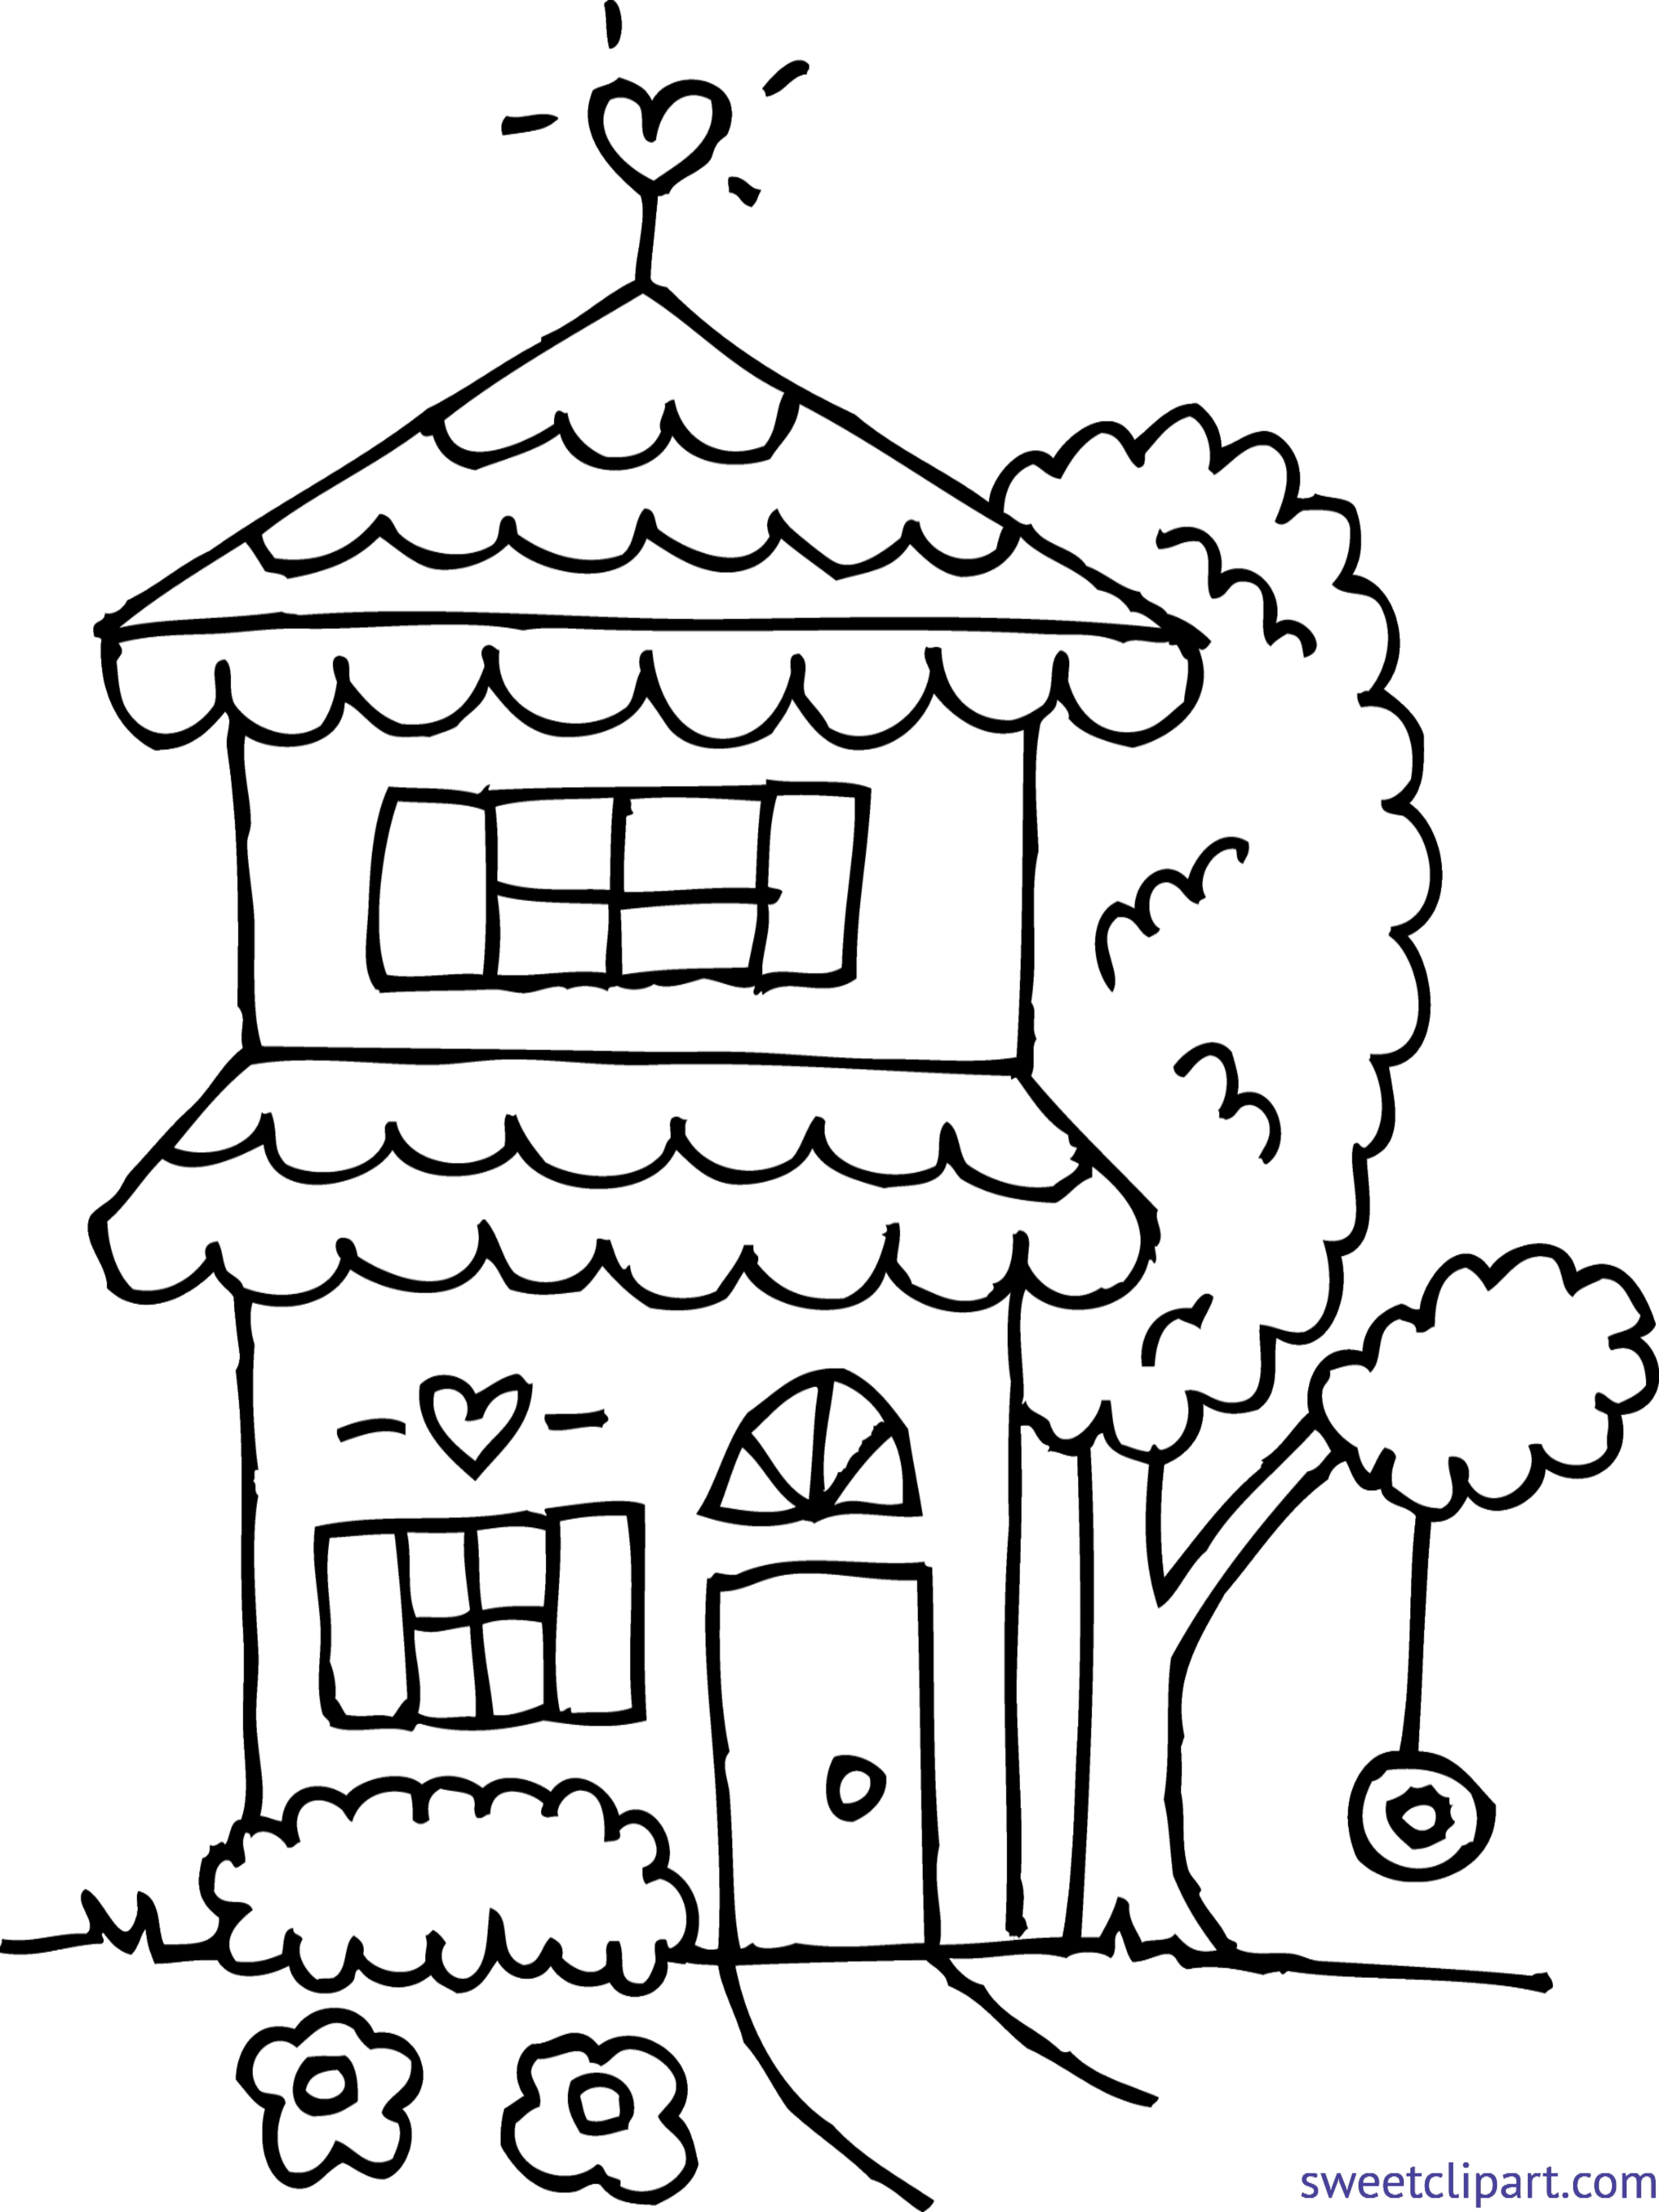 cute house 2 coloring page clip art - House Coloring Pages